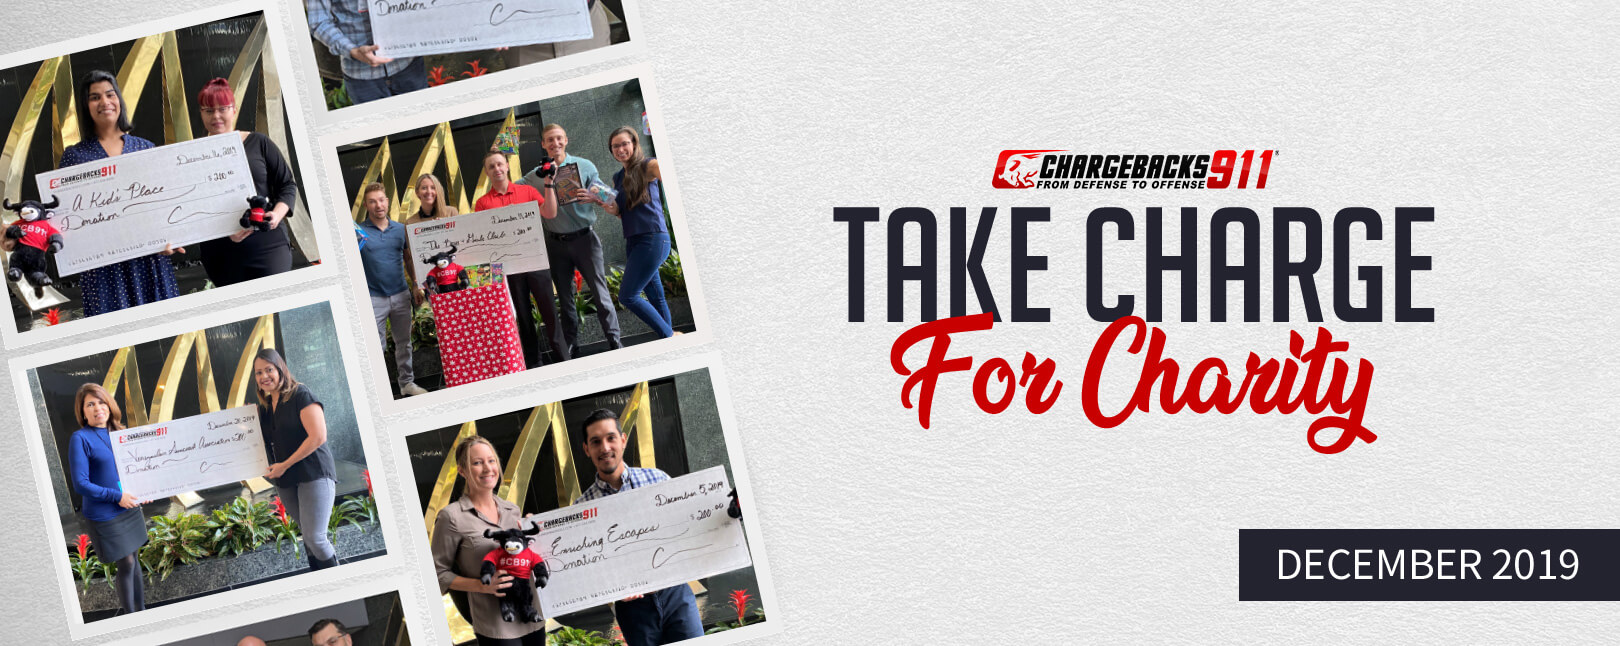 Take Charge for Charity